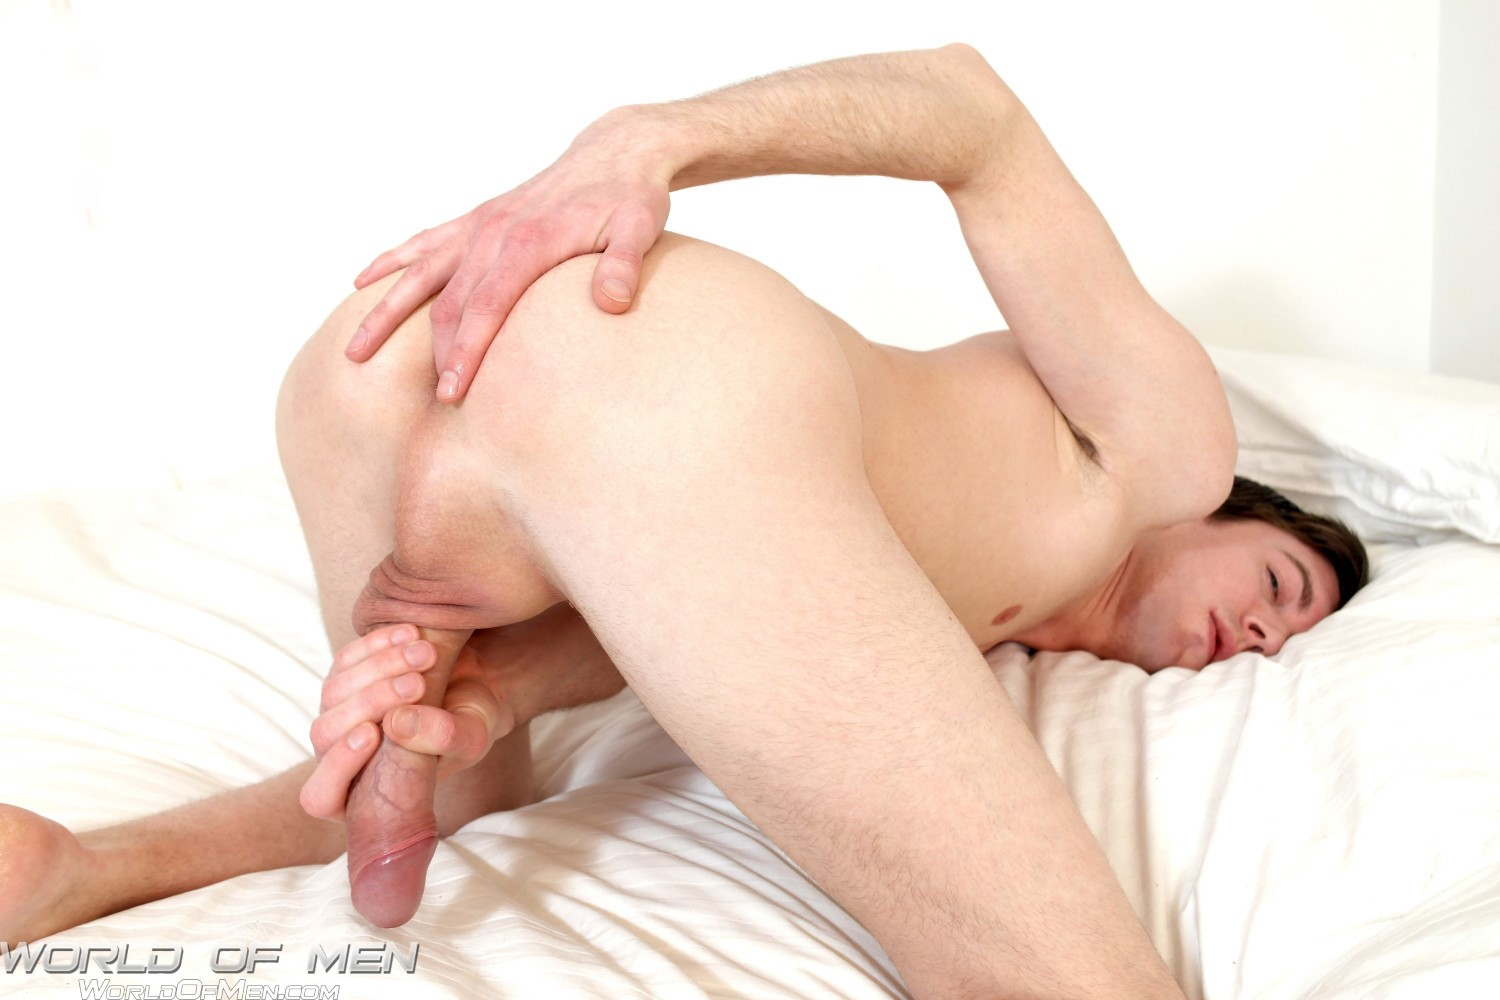 World-of-Men-Bjorn-Swedish-Twink-With-A-Big-Uncut-Cock-Amateur-Gay-Porn-08 Swedish Twink Fingers His Ass And Jerks His Big Uncut Cock